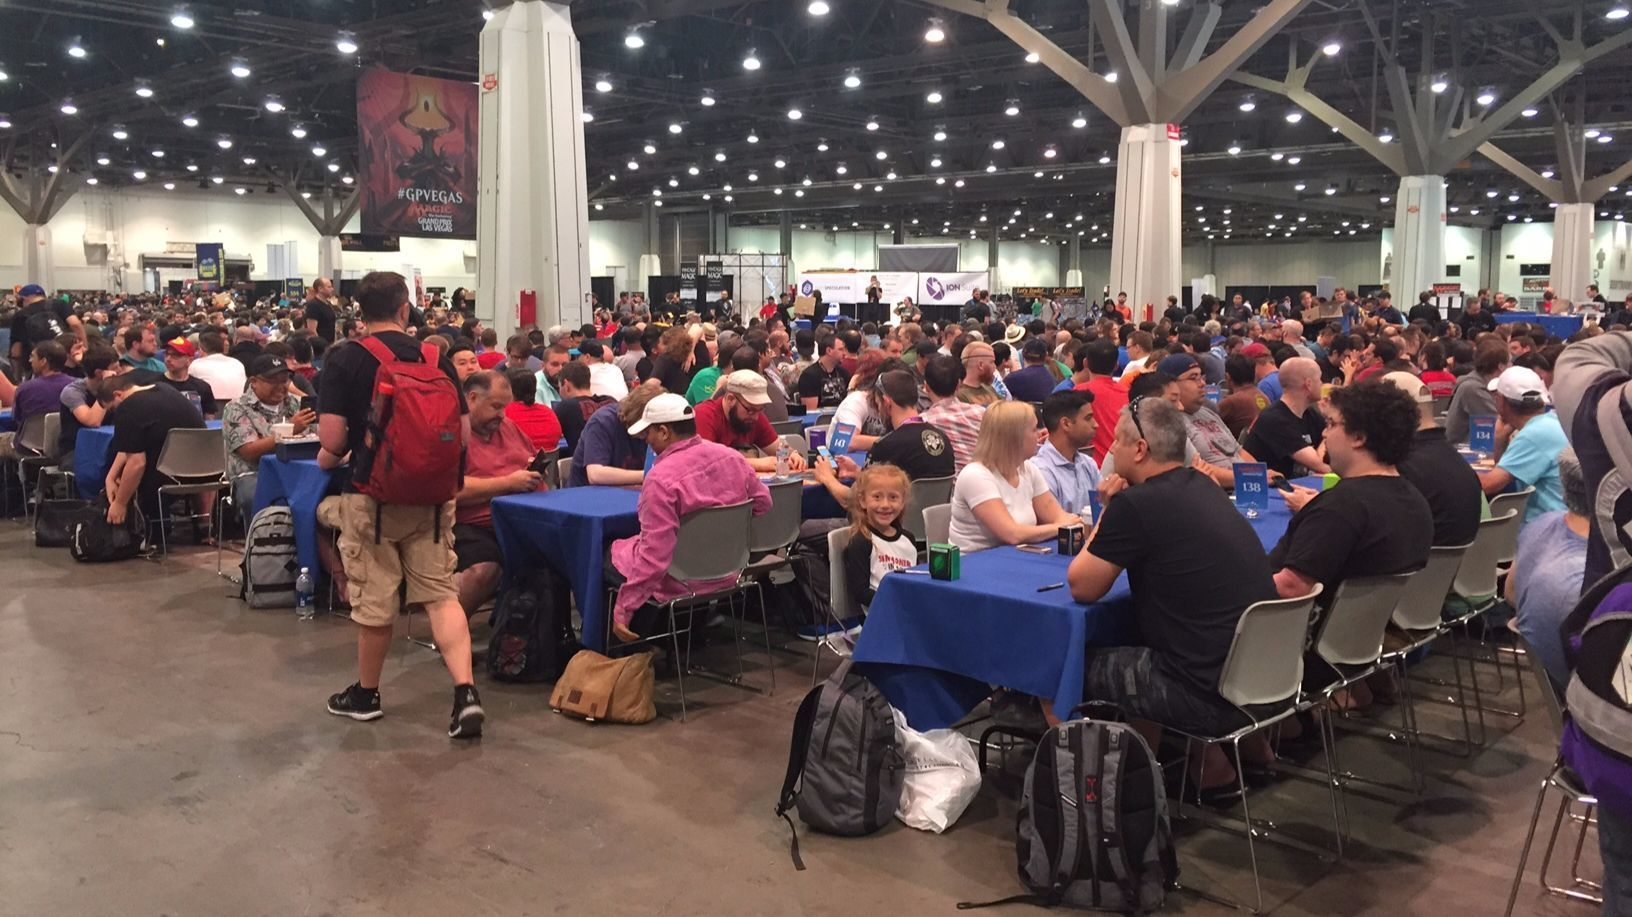 Dana is dwarfed by her competition at Magic the Gathering tournaments.